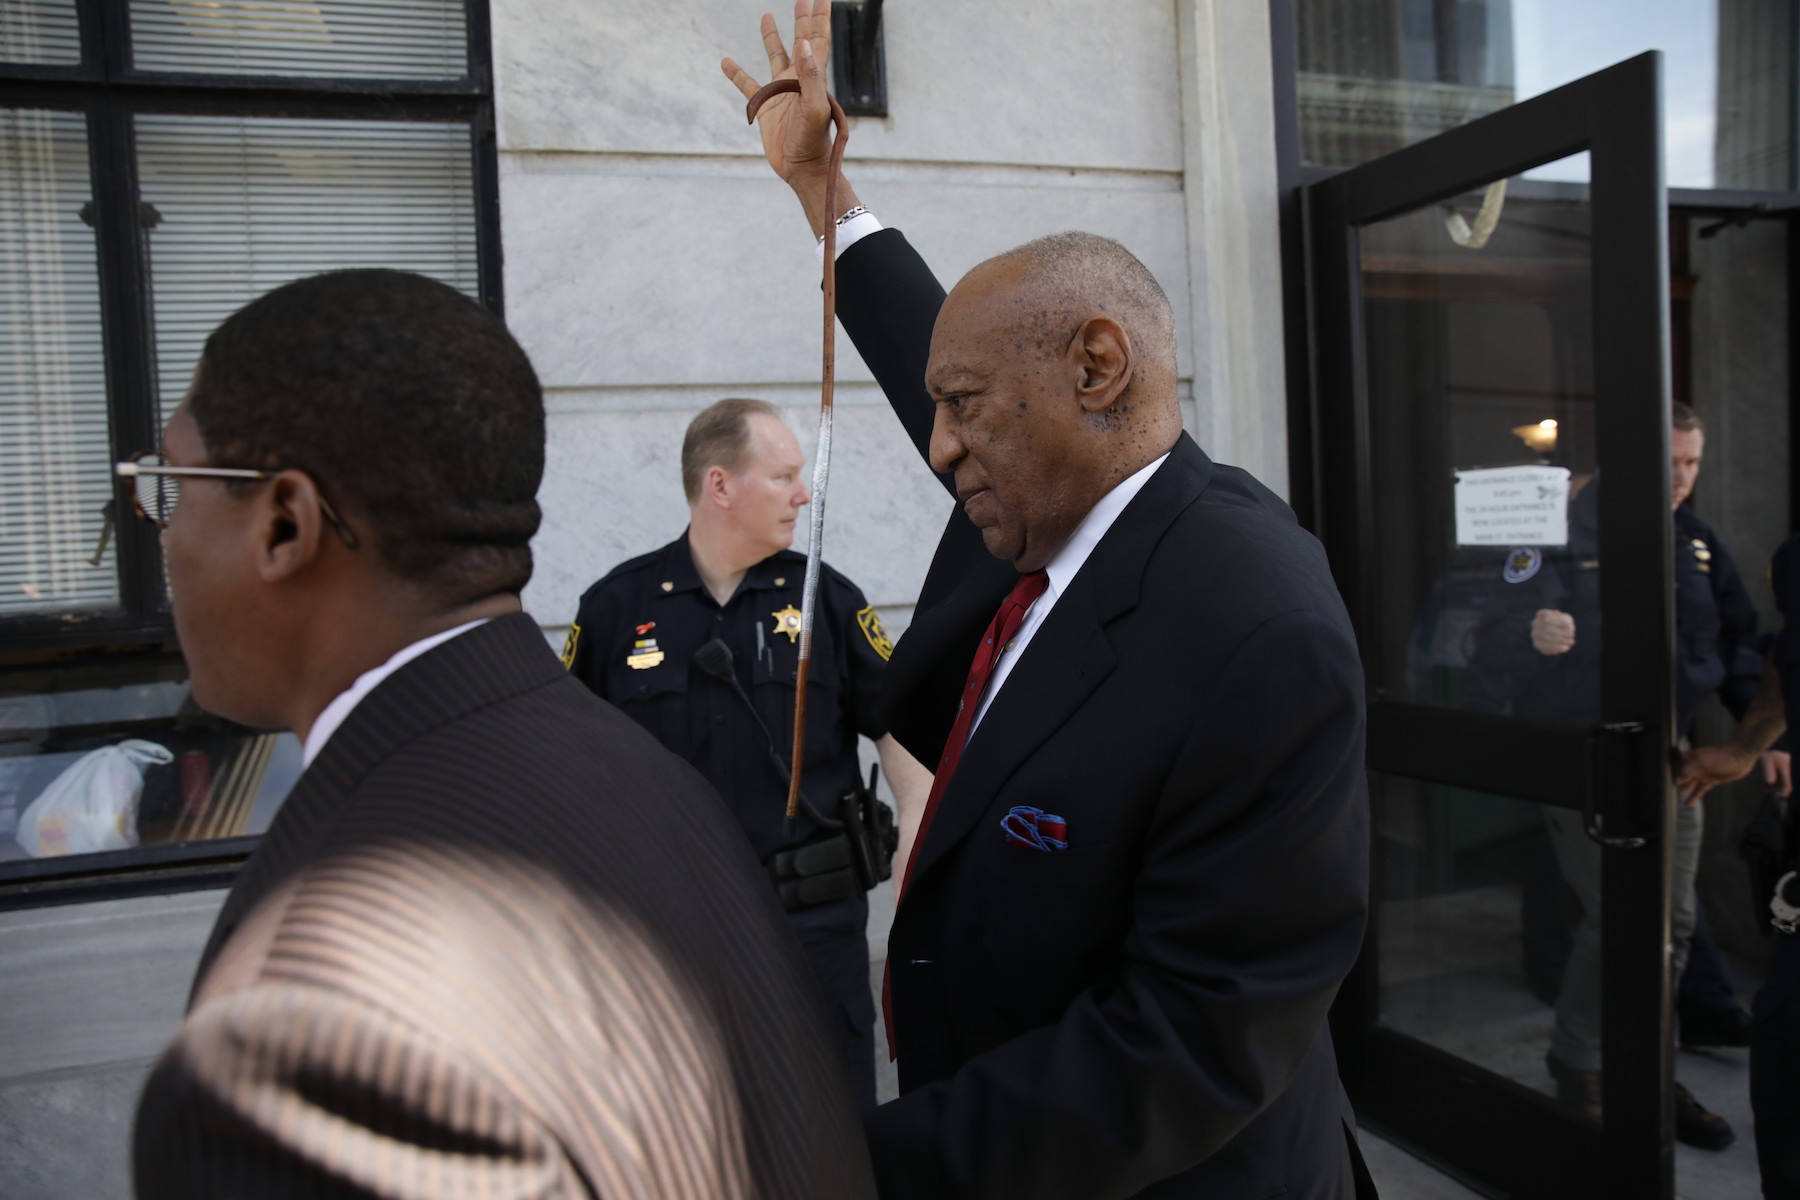 "<div class=""meta image-caption""><div class=""origin-logo origin-image none""><span>none</span></div><span class=""caption-text"">Bill Cosby comes out of the Courthouse after the verdict in the retrial of his sexual assault case at the Montgomery County Courthouse in Norristown, Pennsylvania. (Dominick Reuter/AFP/Getty Images)</span></div>"